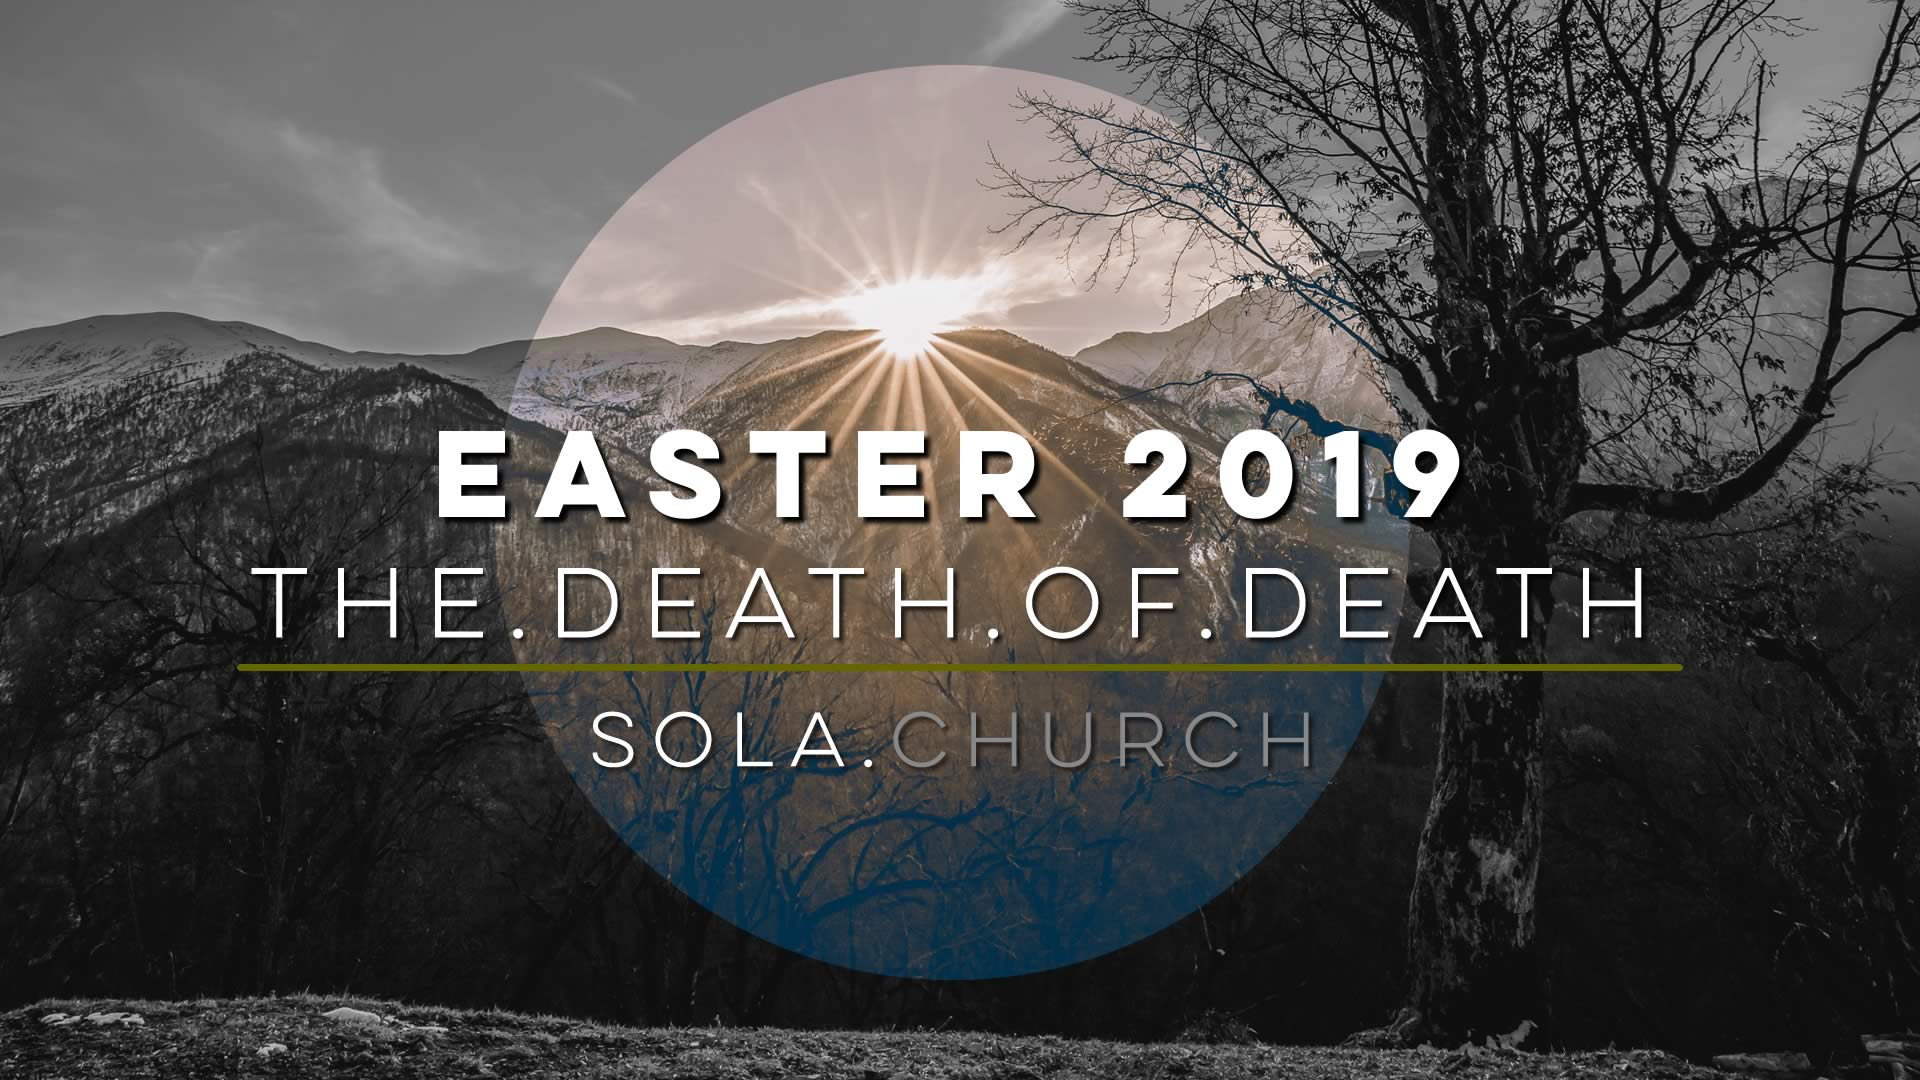 The Death of Death - Easter 2019